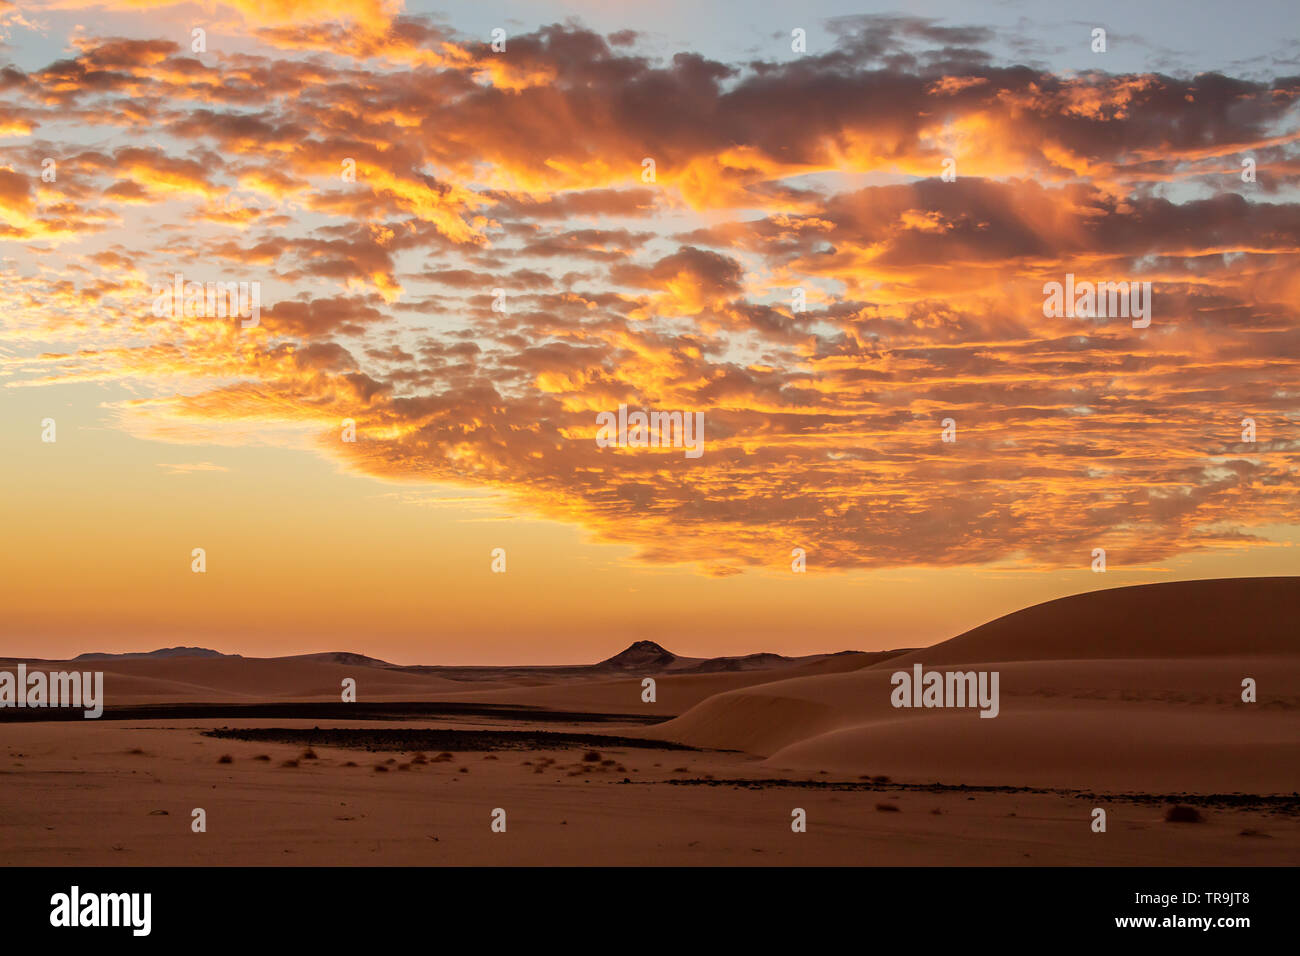 A beautiful African sunset in the western desert of Sudan with colourful clouds and sky and the flat desert landscape - Stock Image